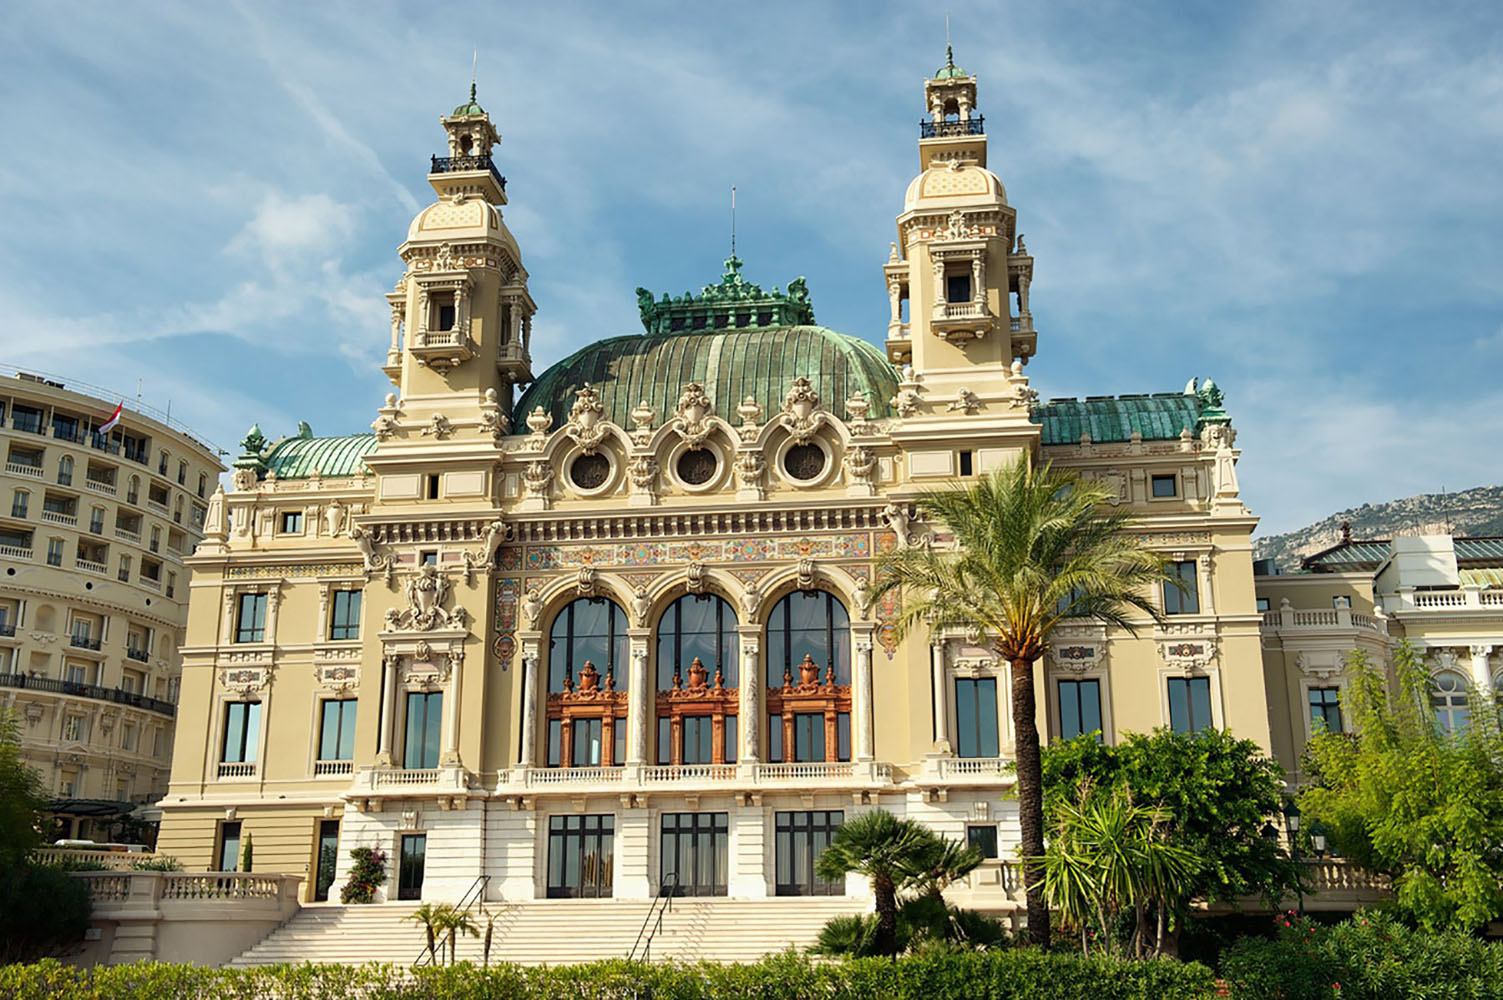 The Casino of Montecarlo in Monaco at midday